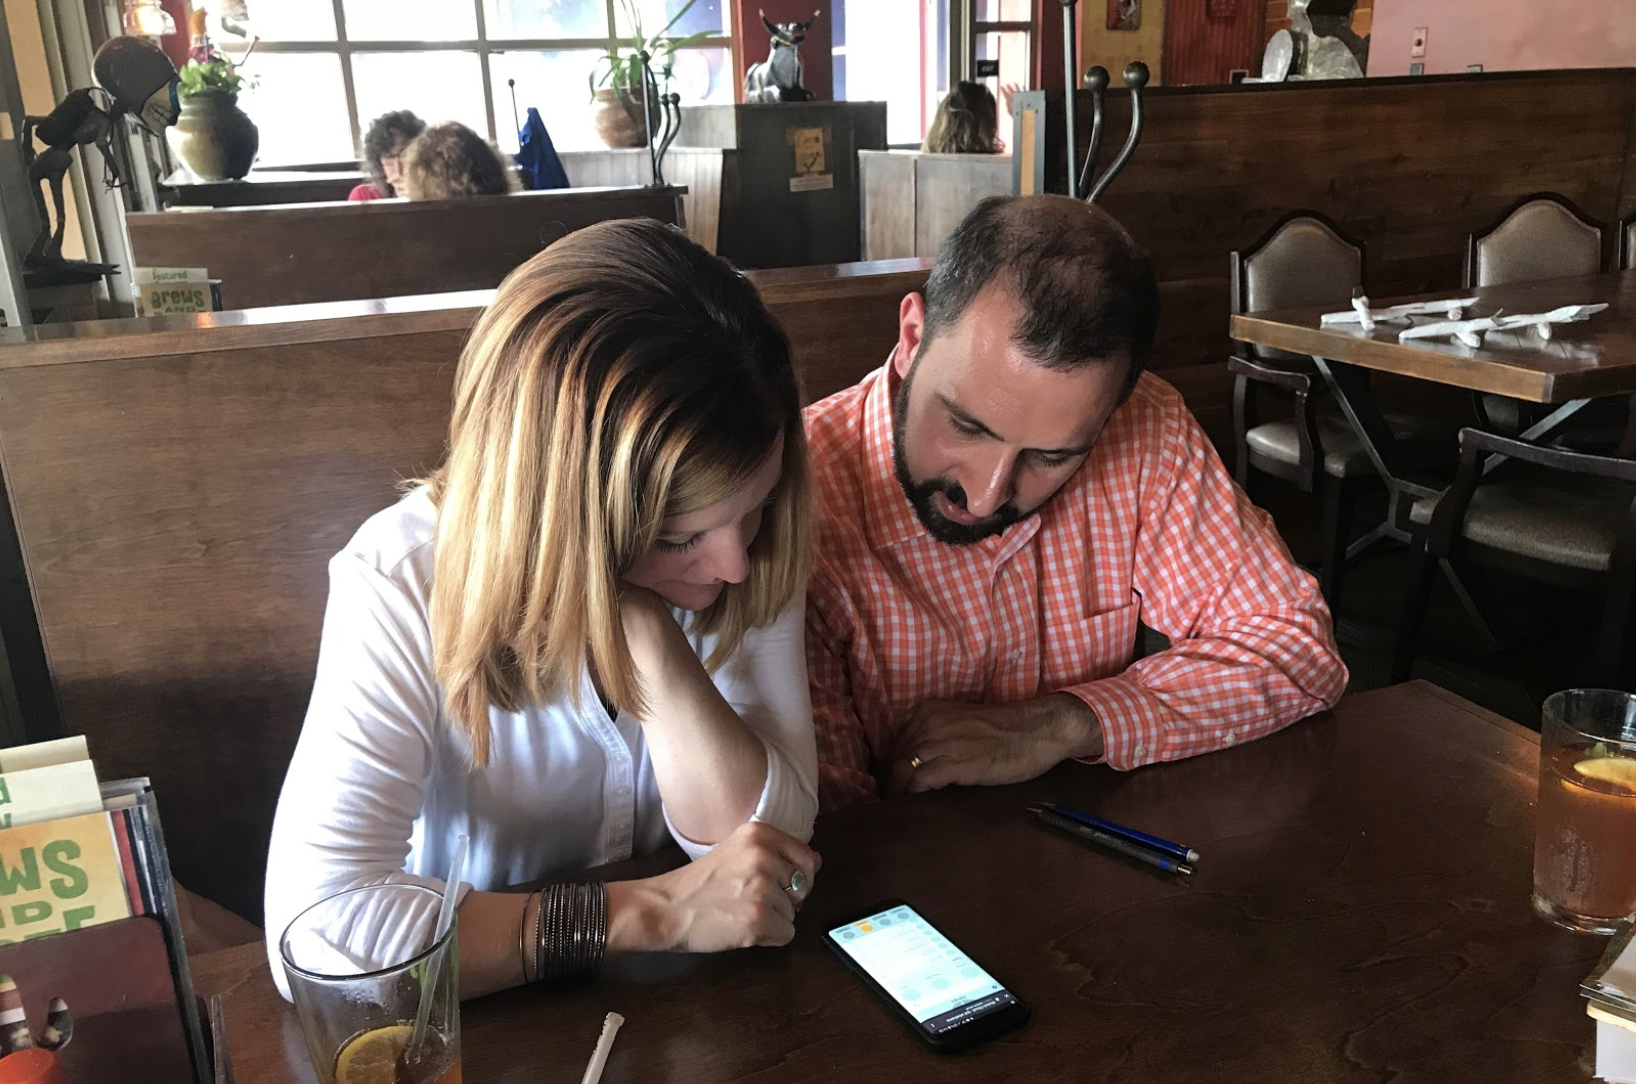 Joe and Jenn Liberatore, walk through some tasks on our low-fidelity prototype and provide feedback. We were able to do this exercise with four groups of potential users.